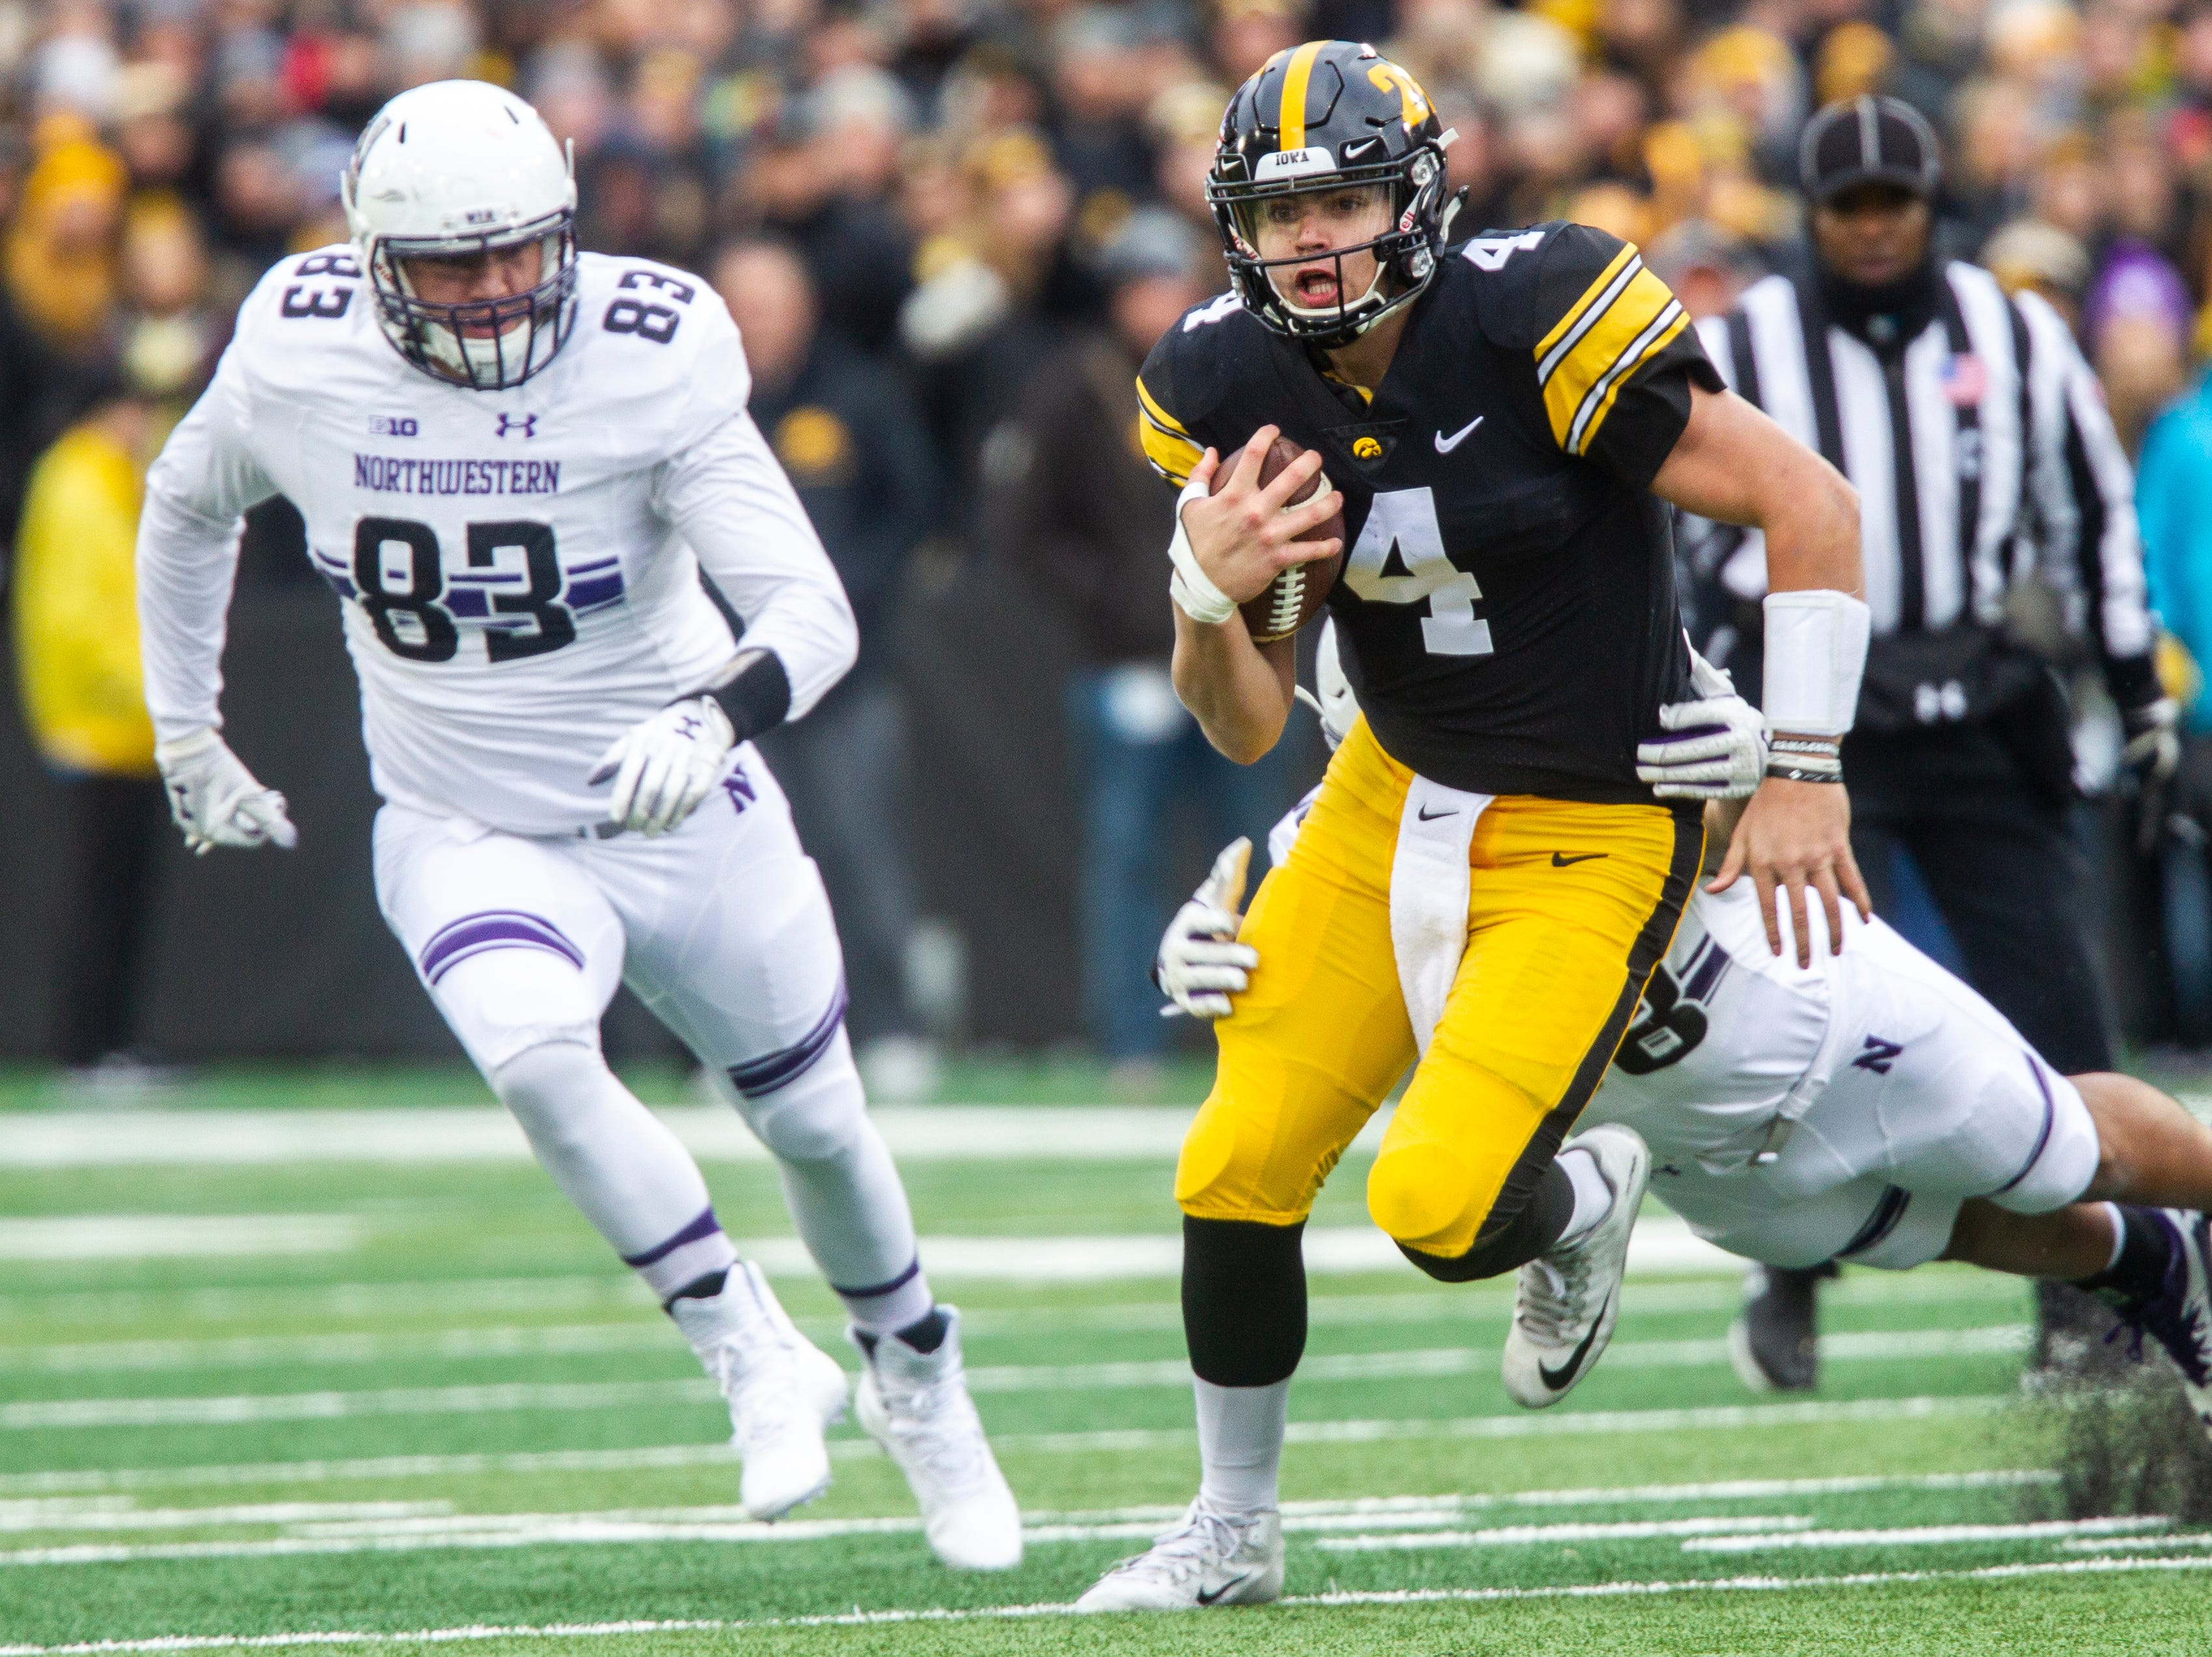 Iowa quarterback Nate Stanley (4) rushes during a Big Ten Conference football game on Saturday, Nov. 10, 2018, at Kinnick Stadium in Iowa City.